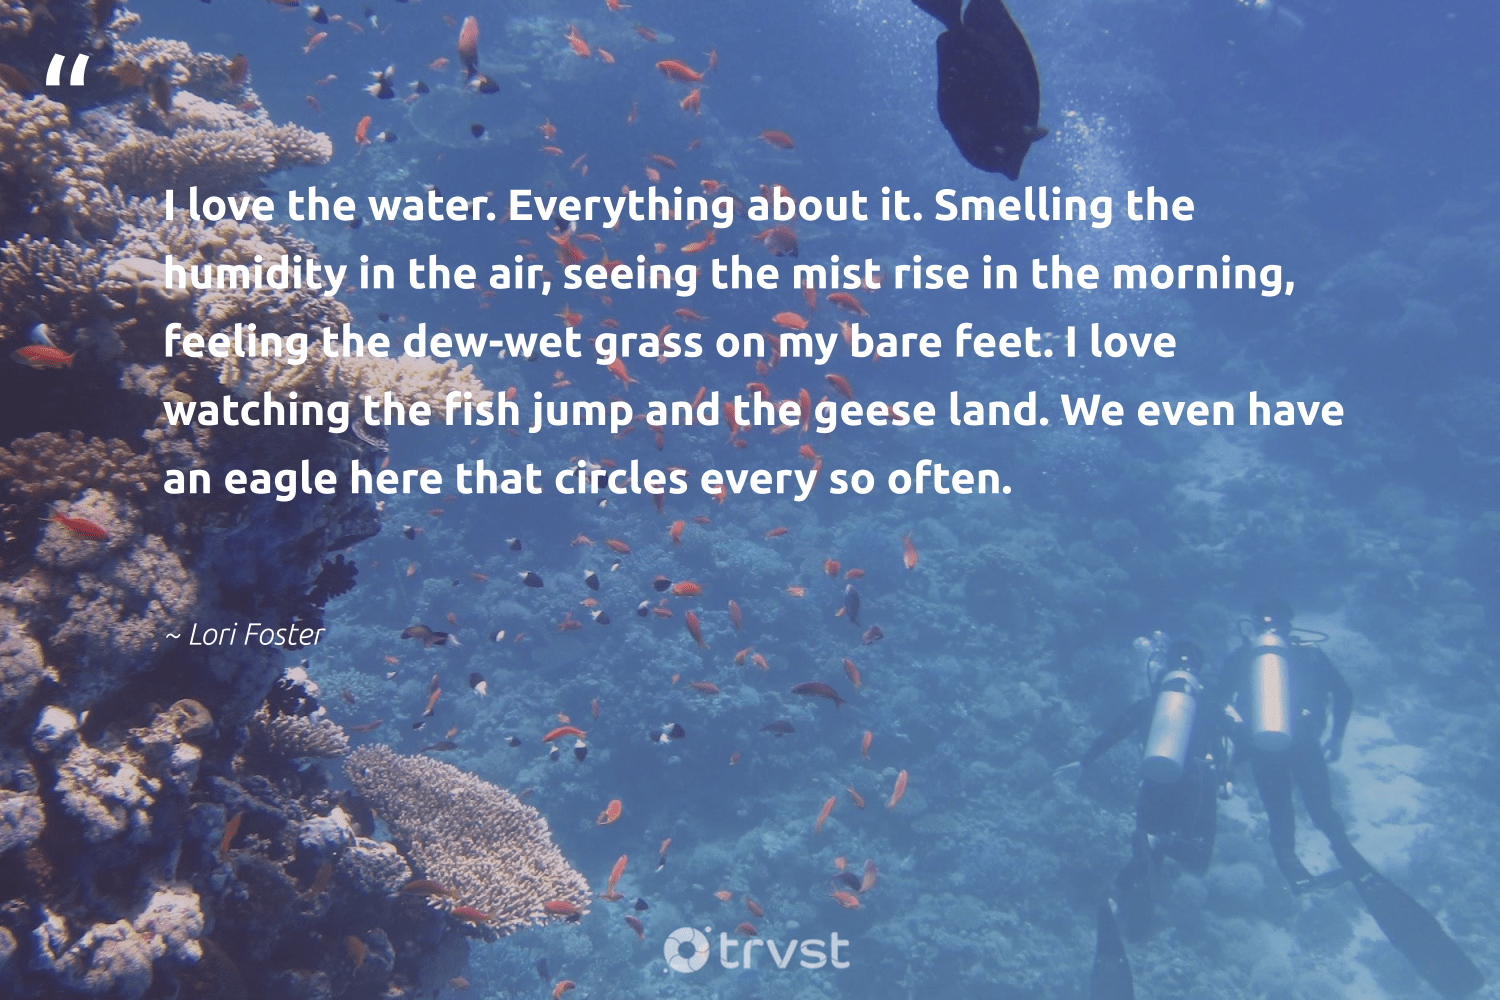 """""""I love the water. Everything about it. Smelling the humidity in the air, seeing the mist rise in the morning, feeling the dew-wet grass on my bare feet. I love watching the fish jump and the geese land. We even have an eagle here that circles every so often.""""  - Lori Foster #trvst #quotes #love #water #fish #ocean #sealife #eco #planetearthfirst #saveourocean #conservation #naturelovers"""